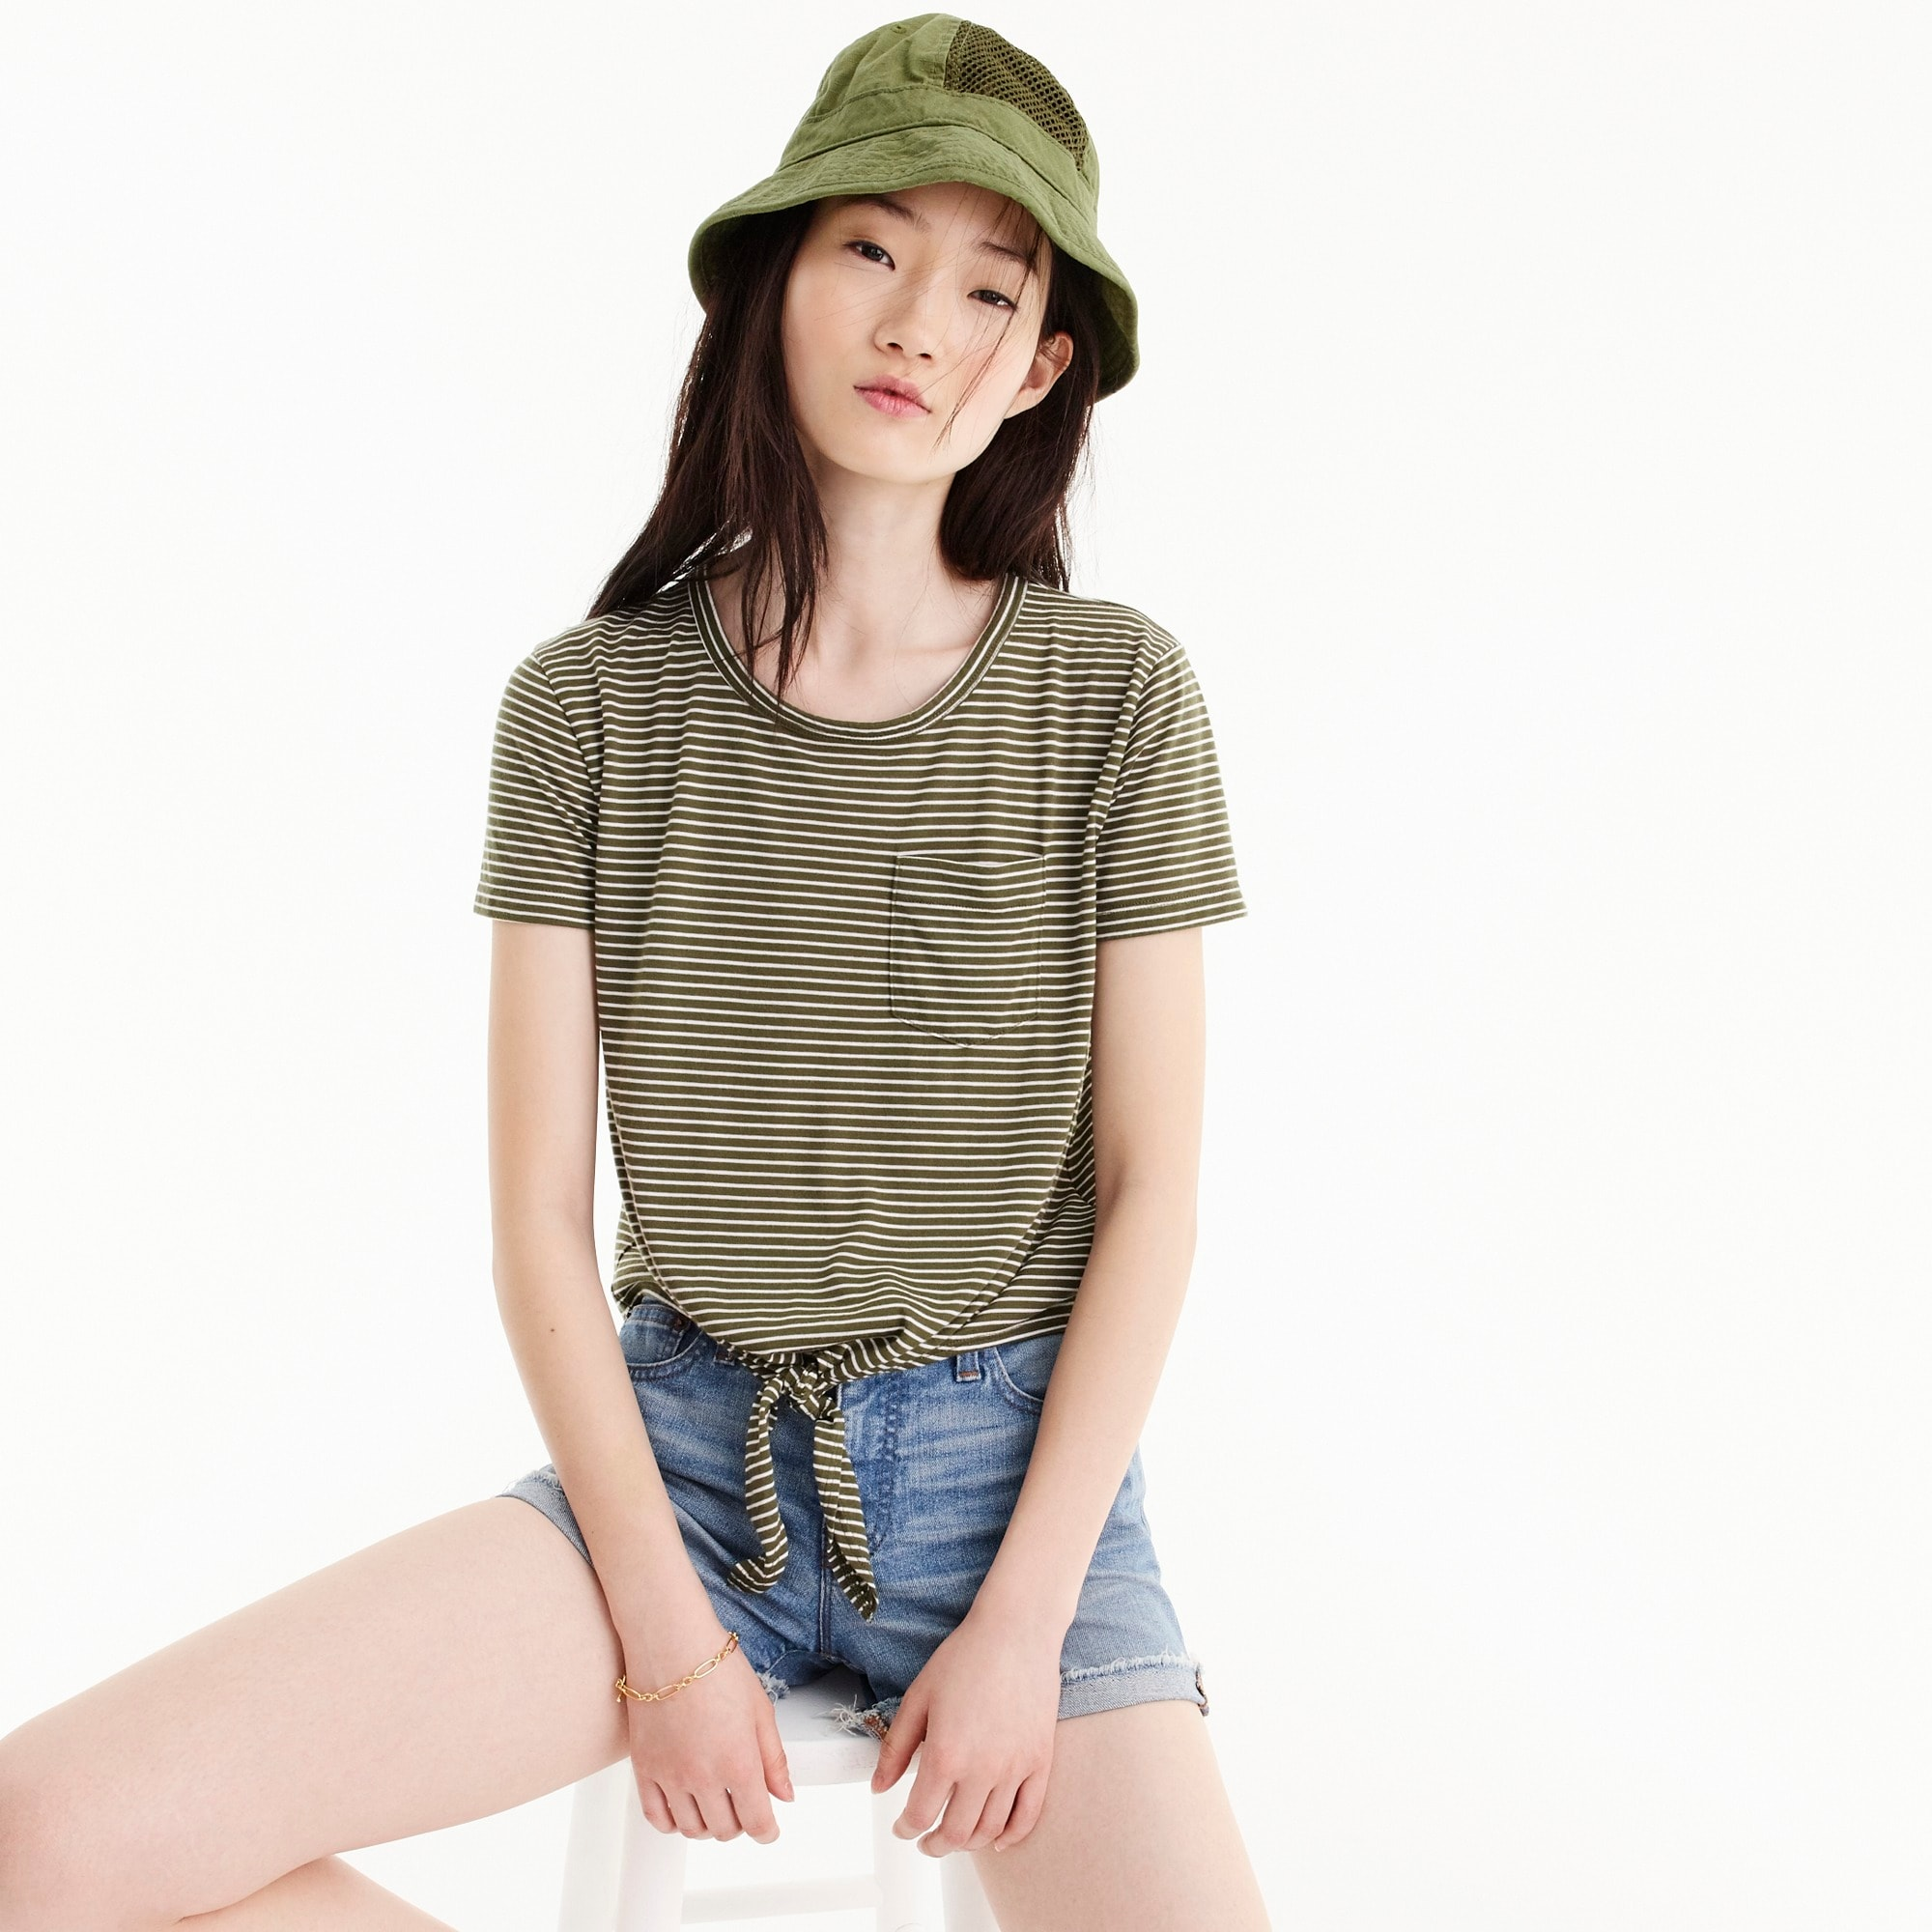 Knotted pocket T-shirt in stripes